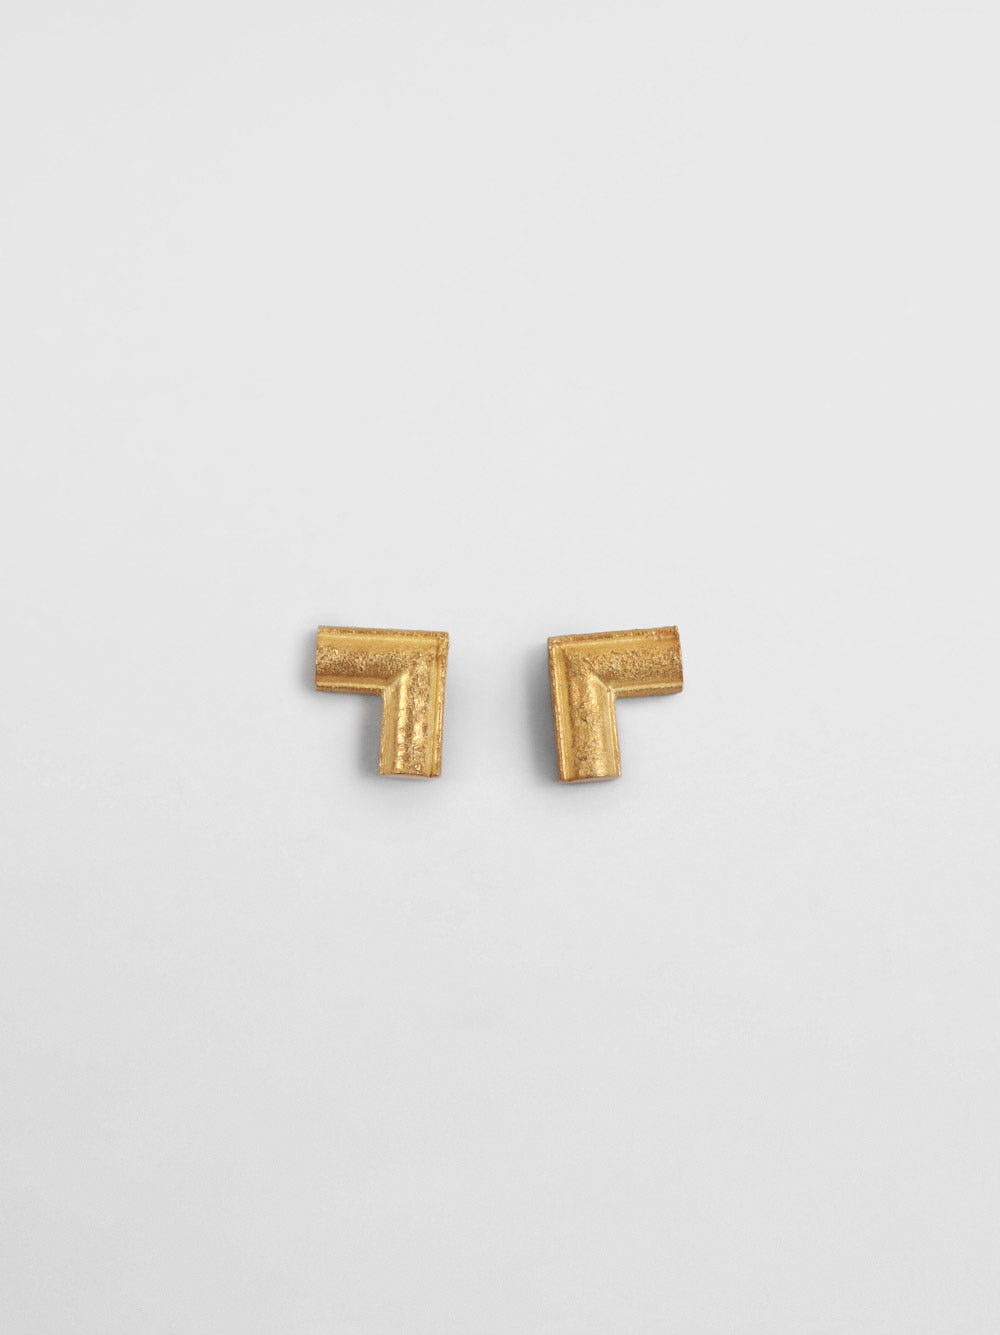 Firenze Pitti Earrings – Paula Vieira Jewellery